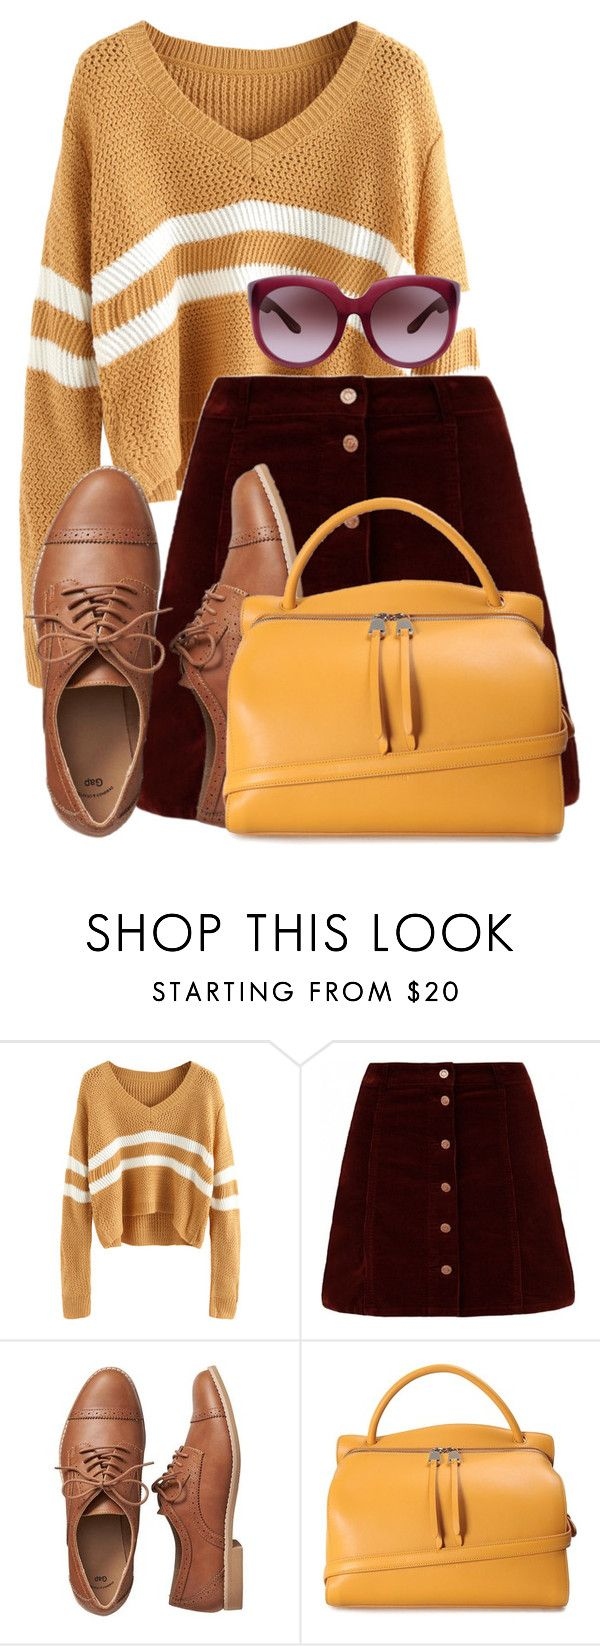 """Untitled #1734"" by cheesinjuliet ❤ liked on Polyvore featuring Gap, Jil Sander and Bottega Veneta"